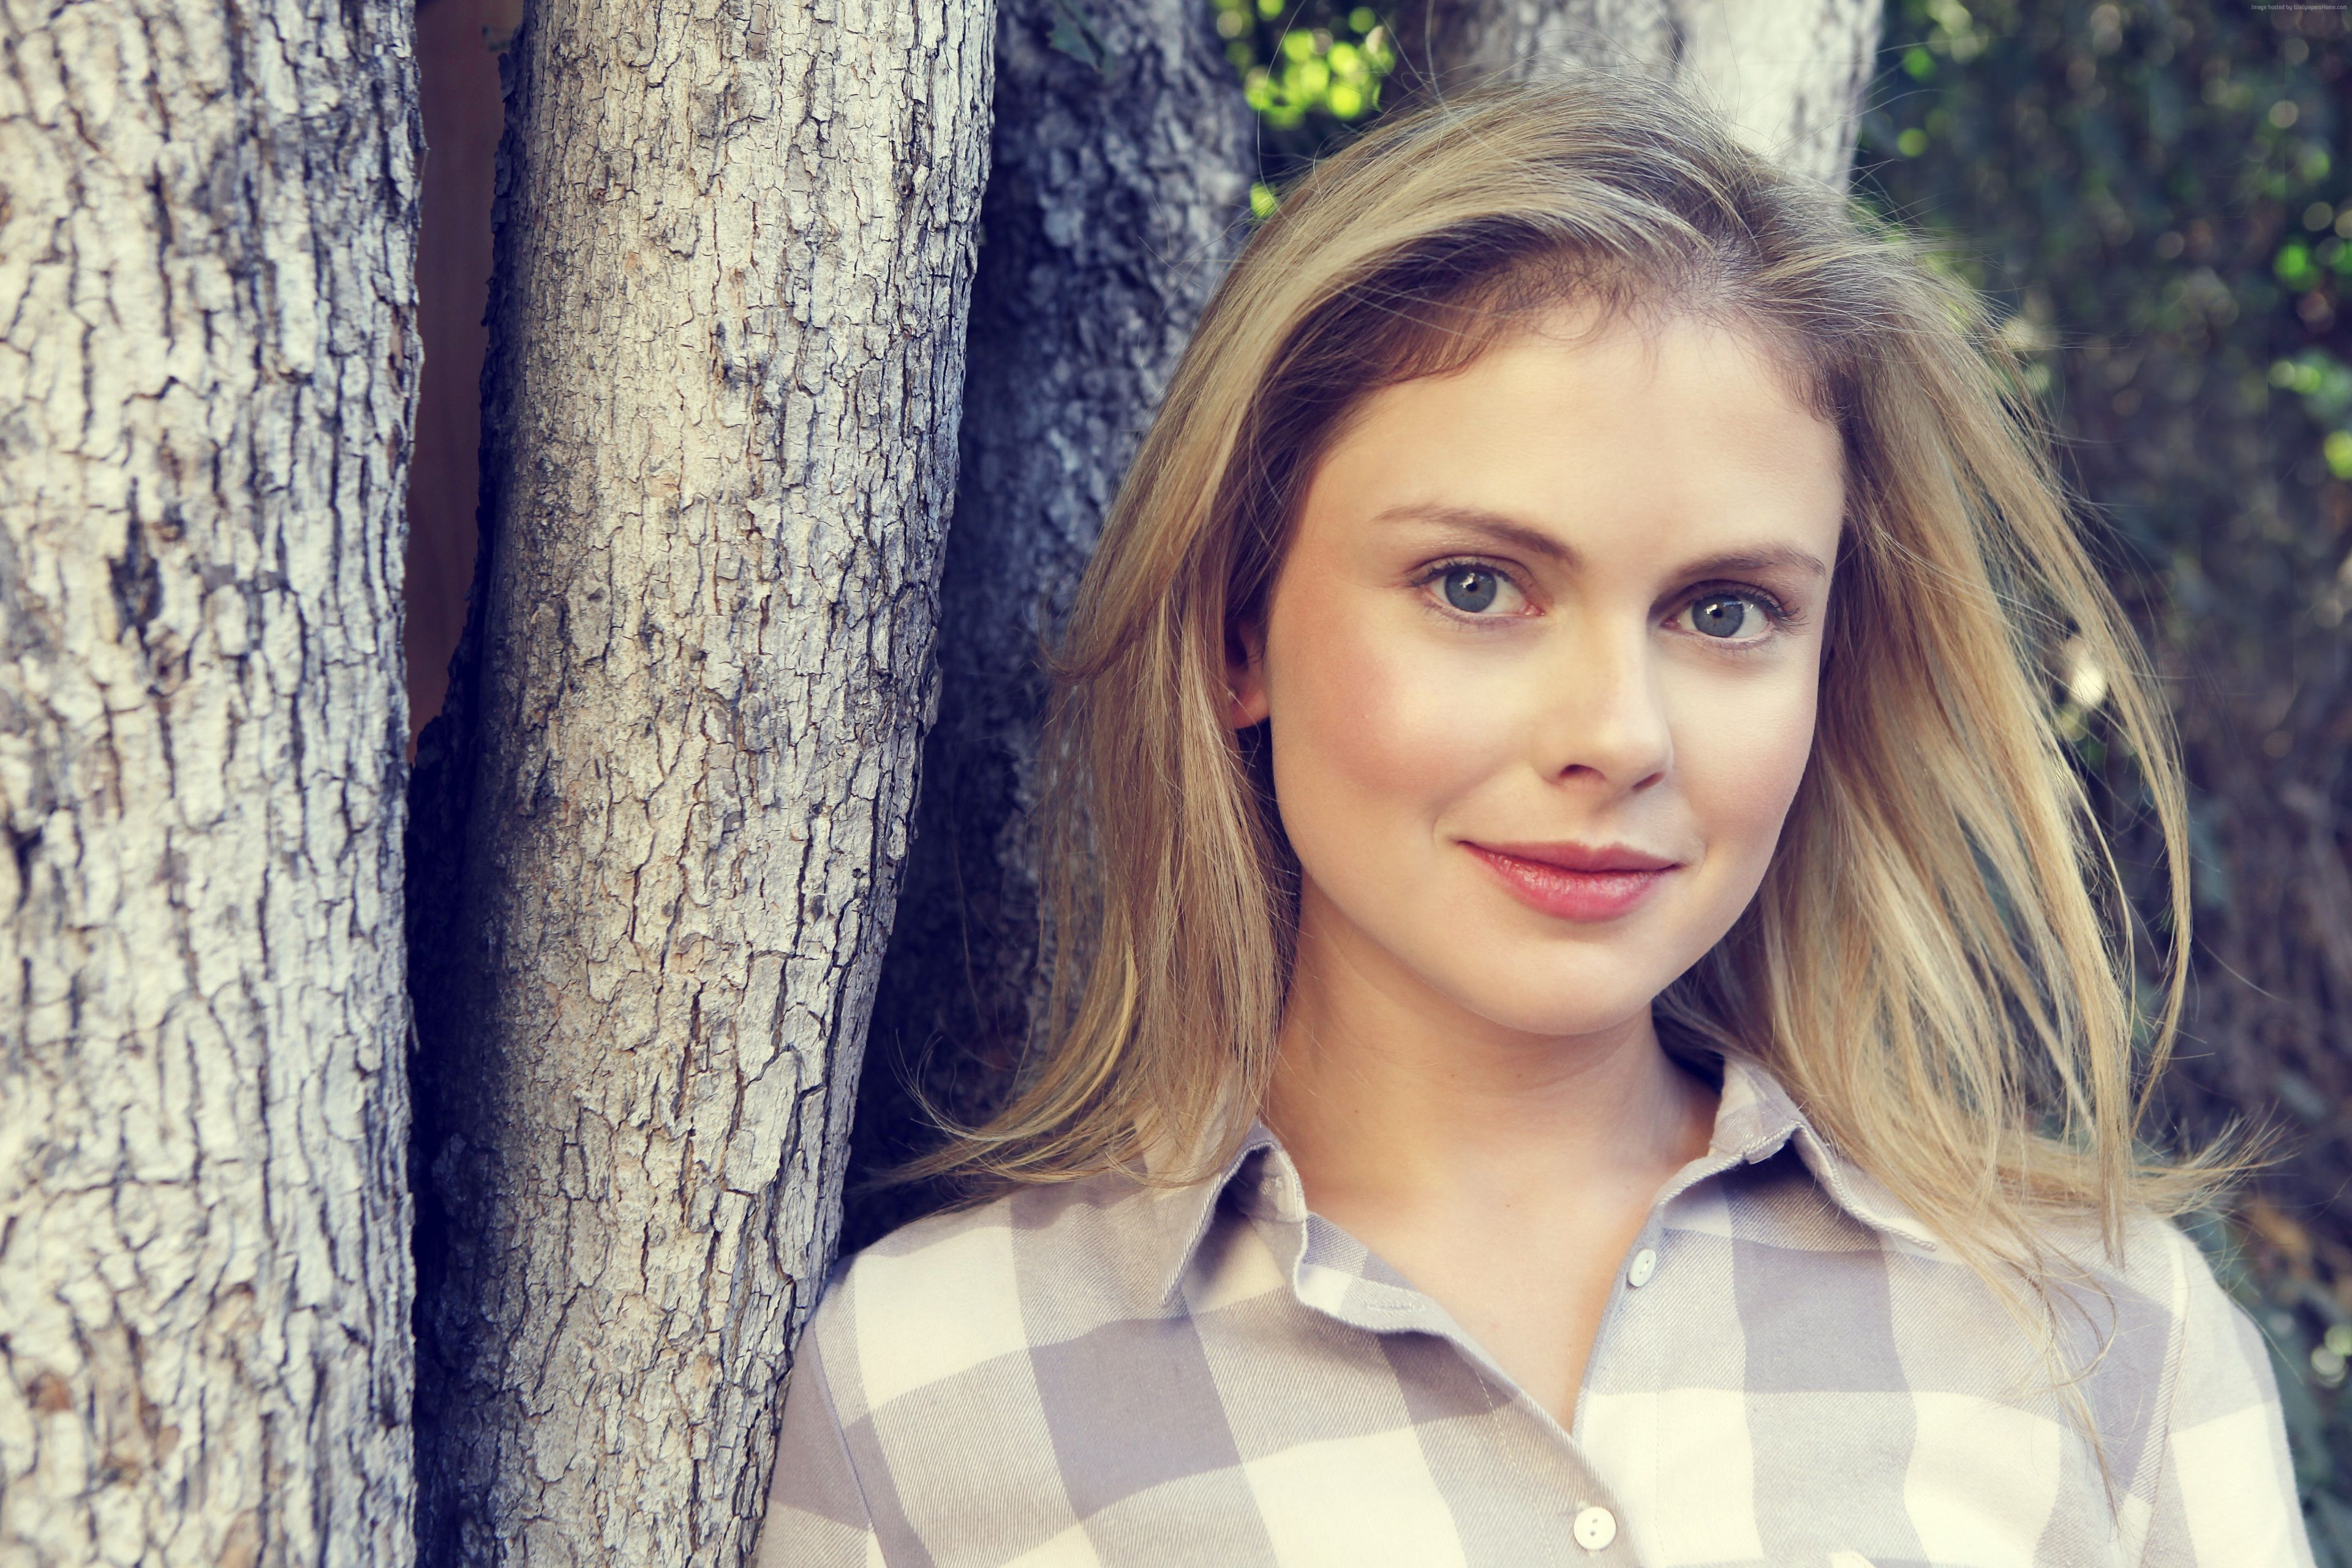 3840x2560 - Rose McIver Wallpapers 11